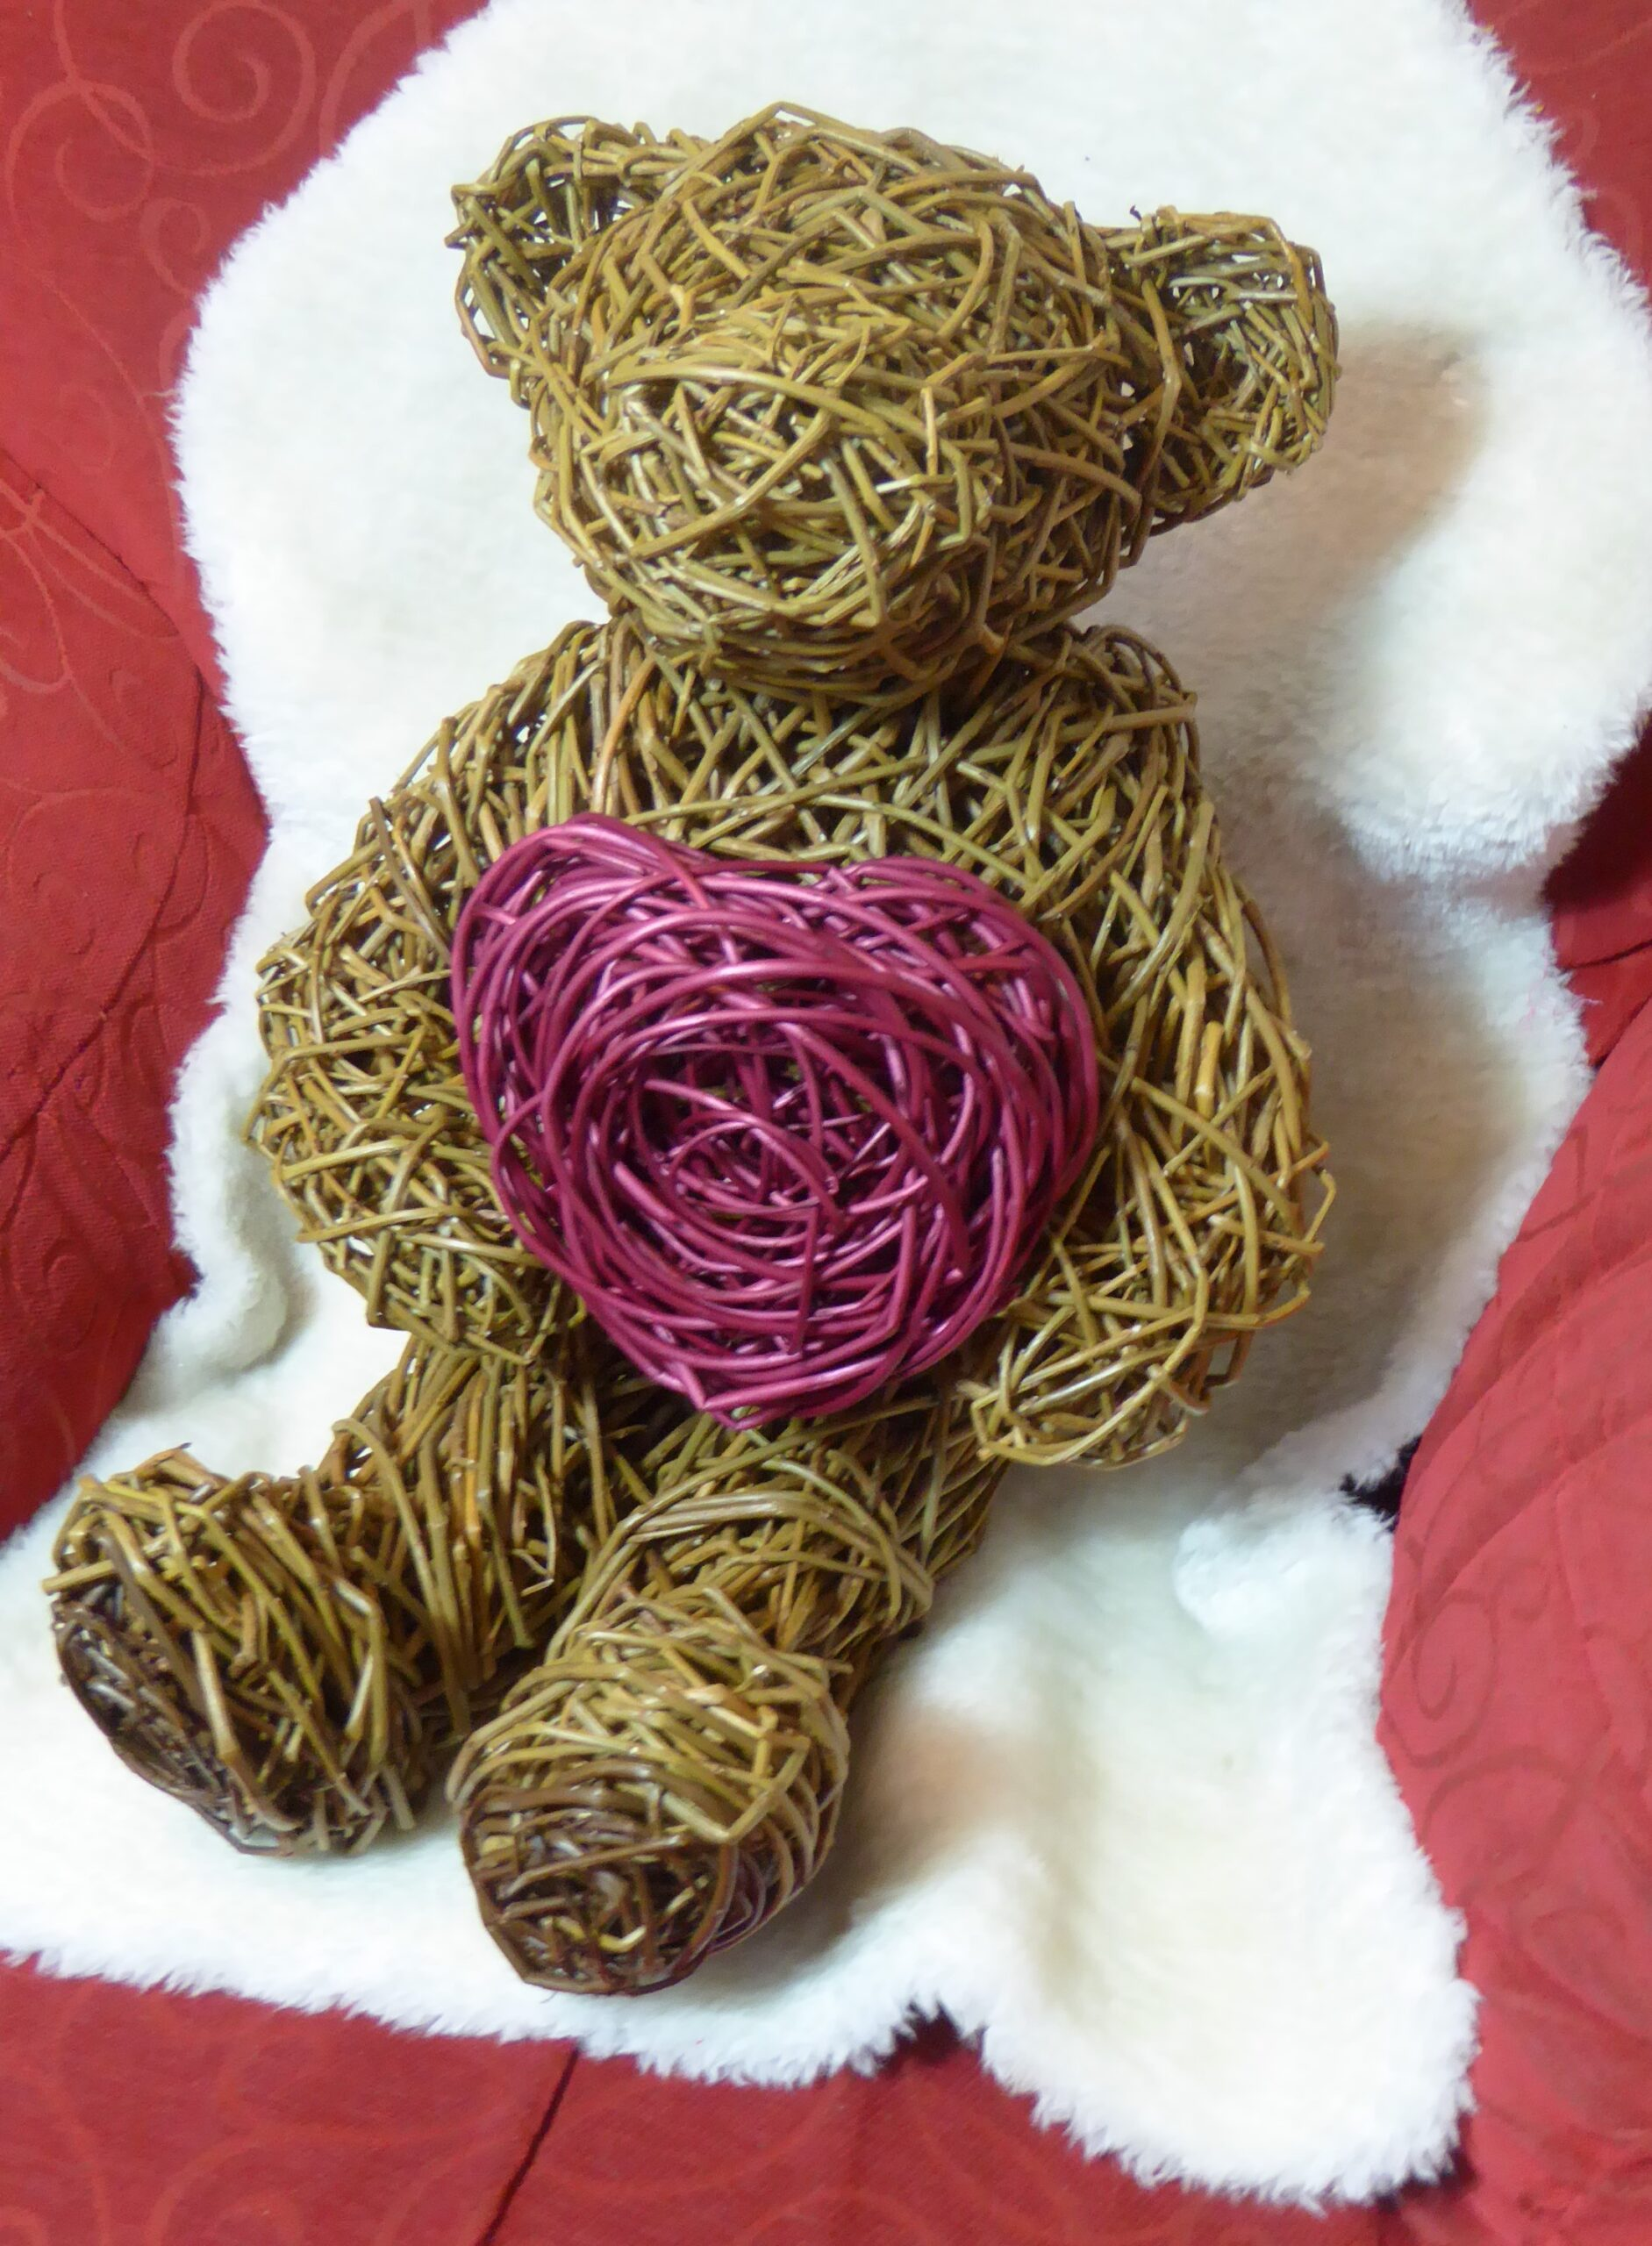 teddy bear willows culpture sitting on seat with sheepsking blanket